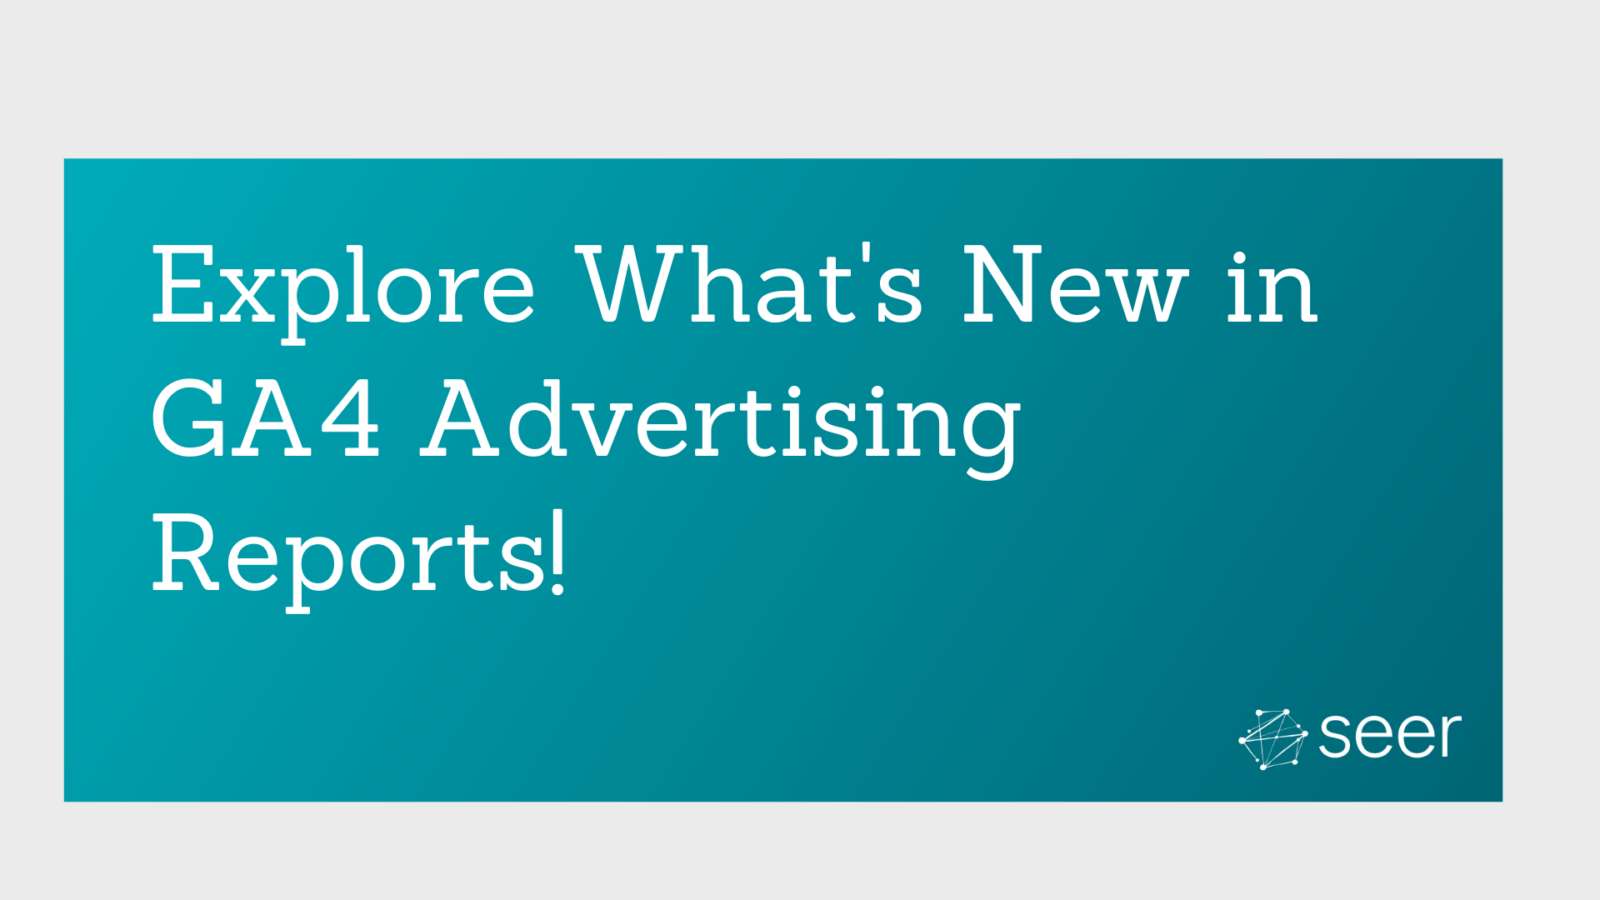 GA4 New Advertising Report Features